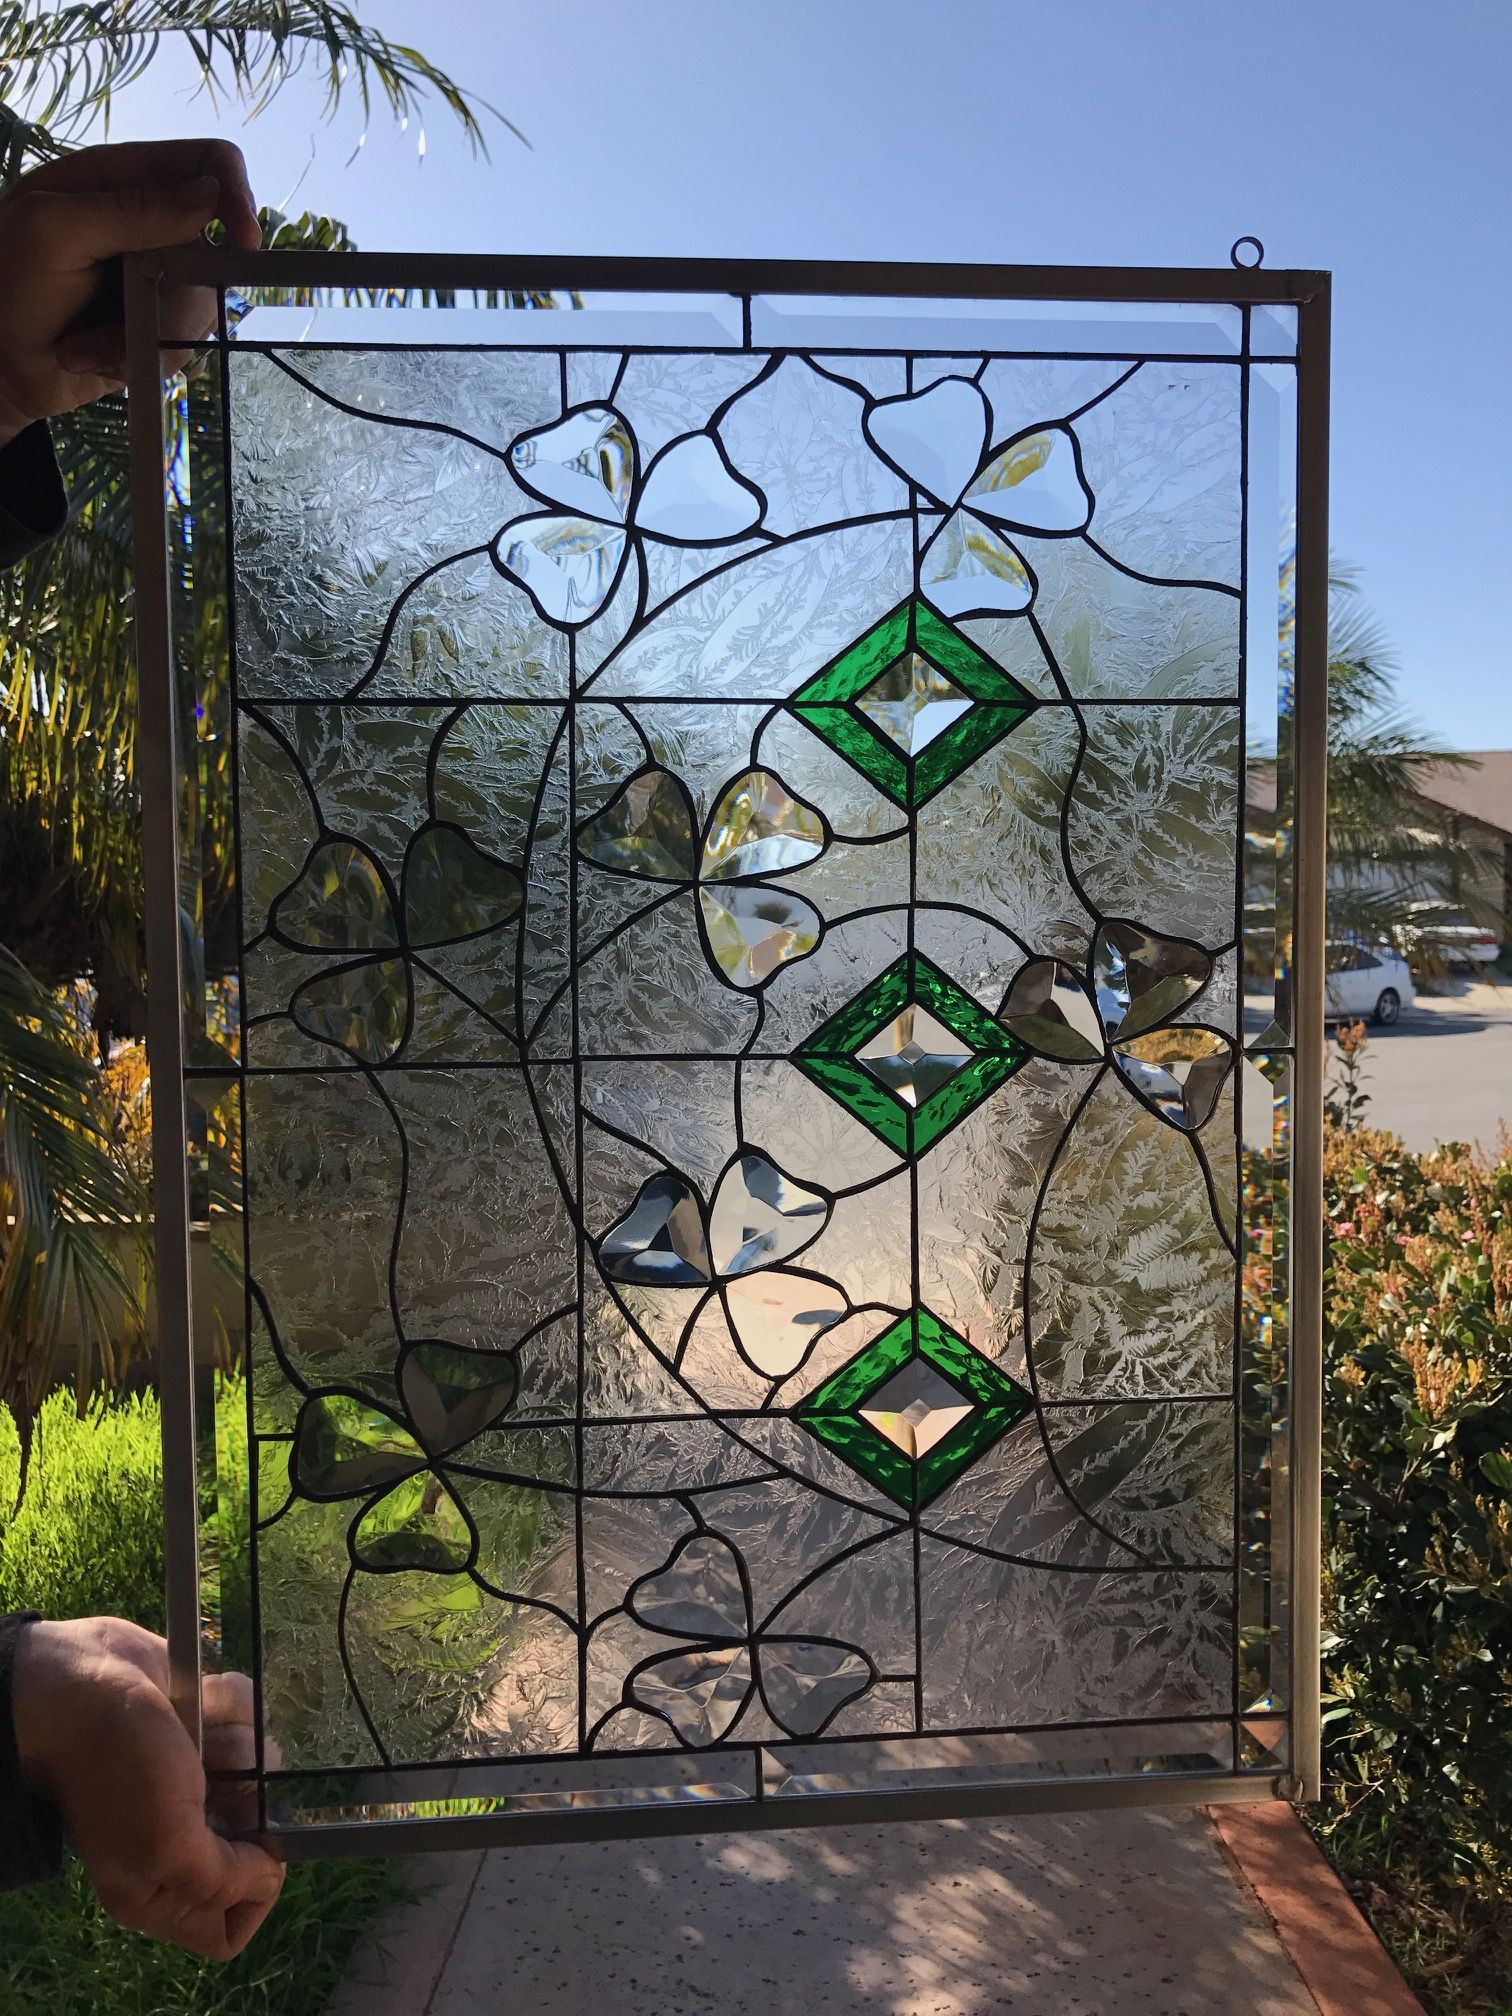 #home&living #homedecor #ornaments&accents #stained #glass #windows #panel #artglass #beveled #decorative #stain #leaded #stainedglasswindows